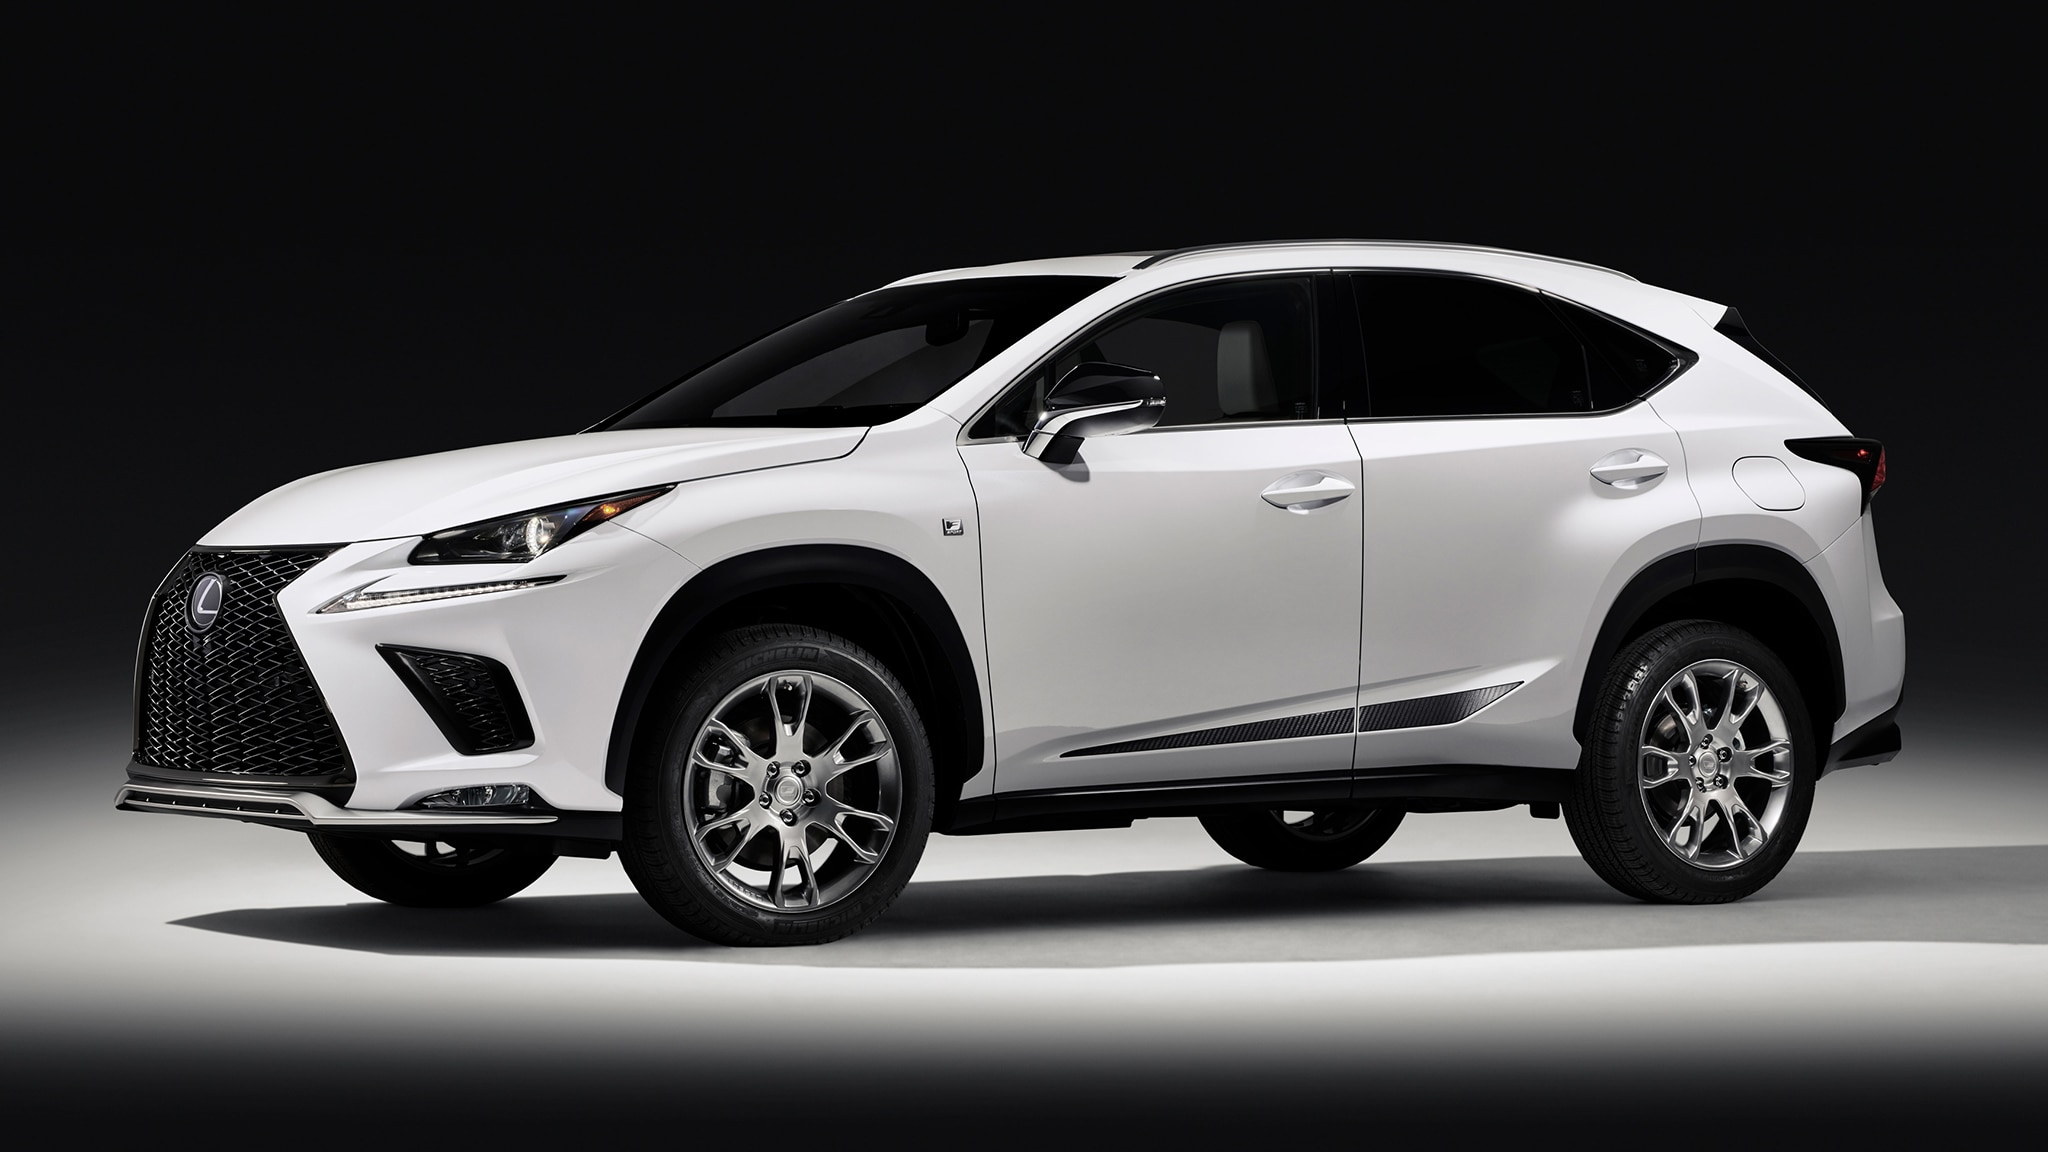 2019 Lexus NX F Sport Black Line: Also Available In White